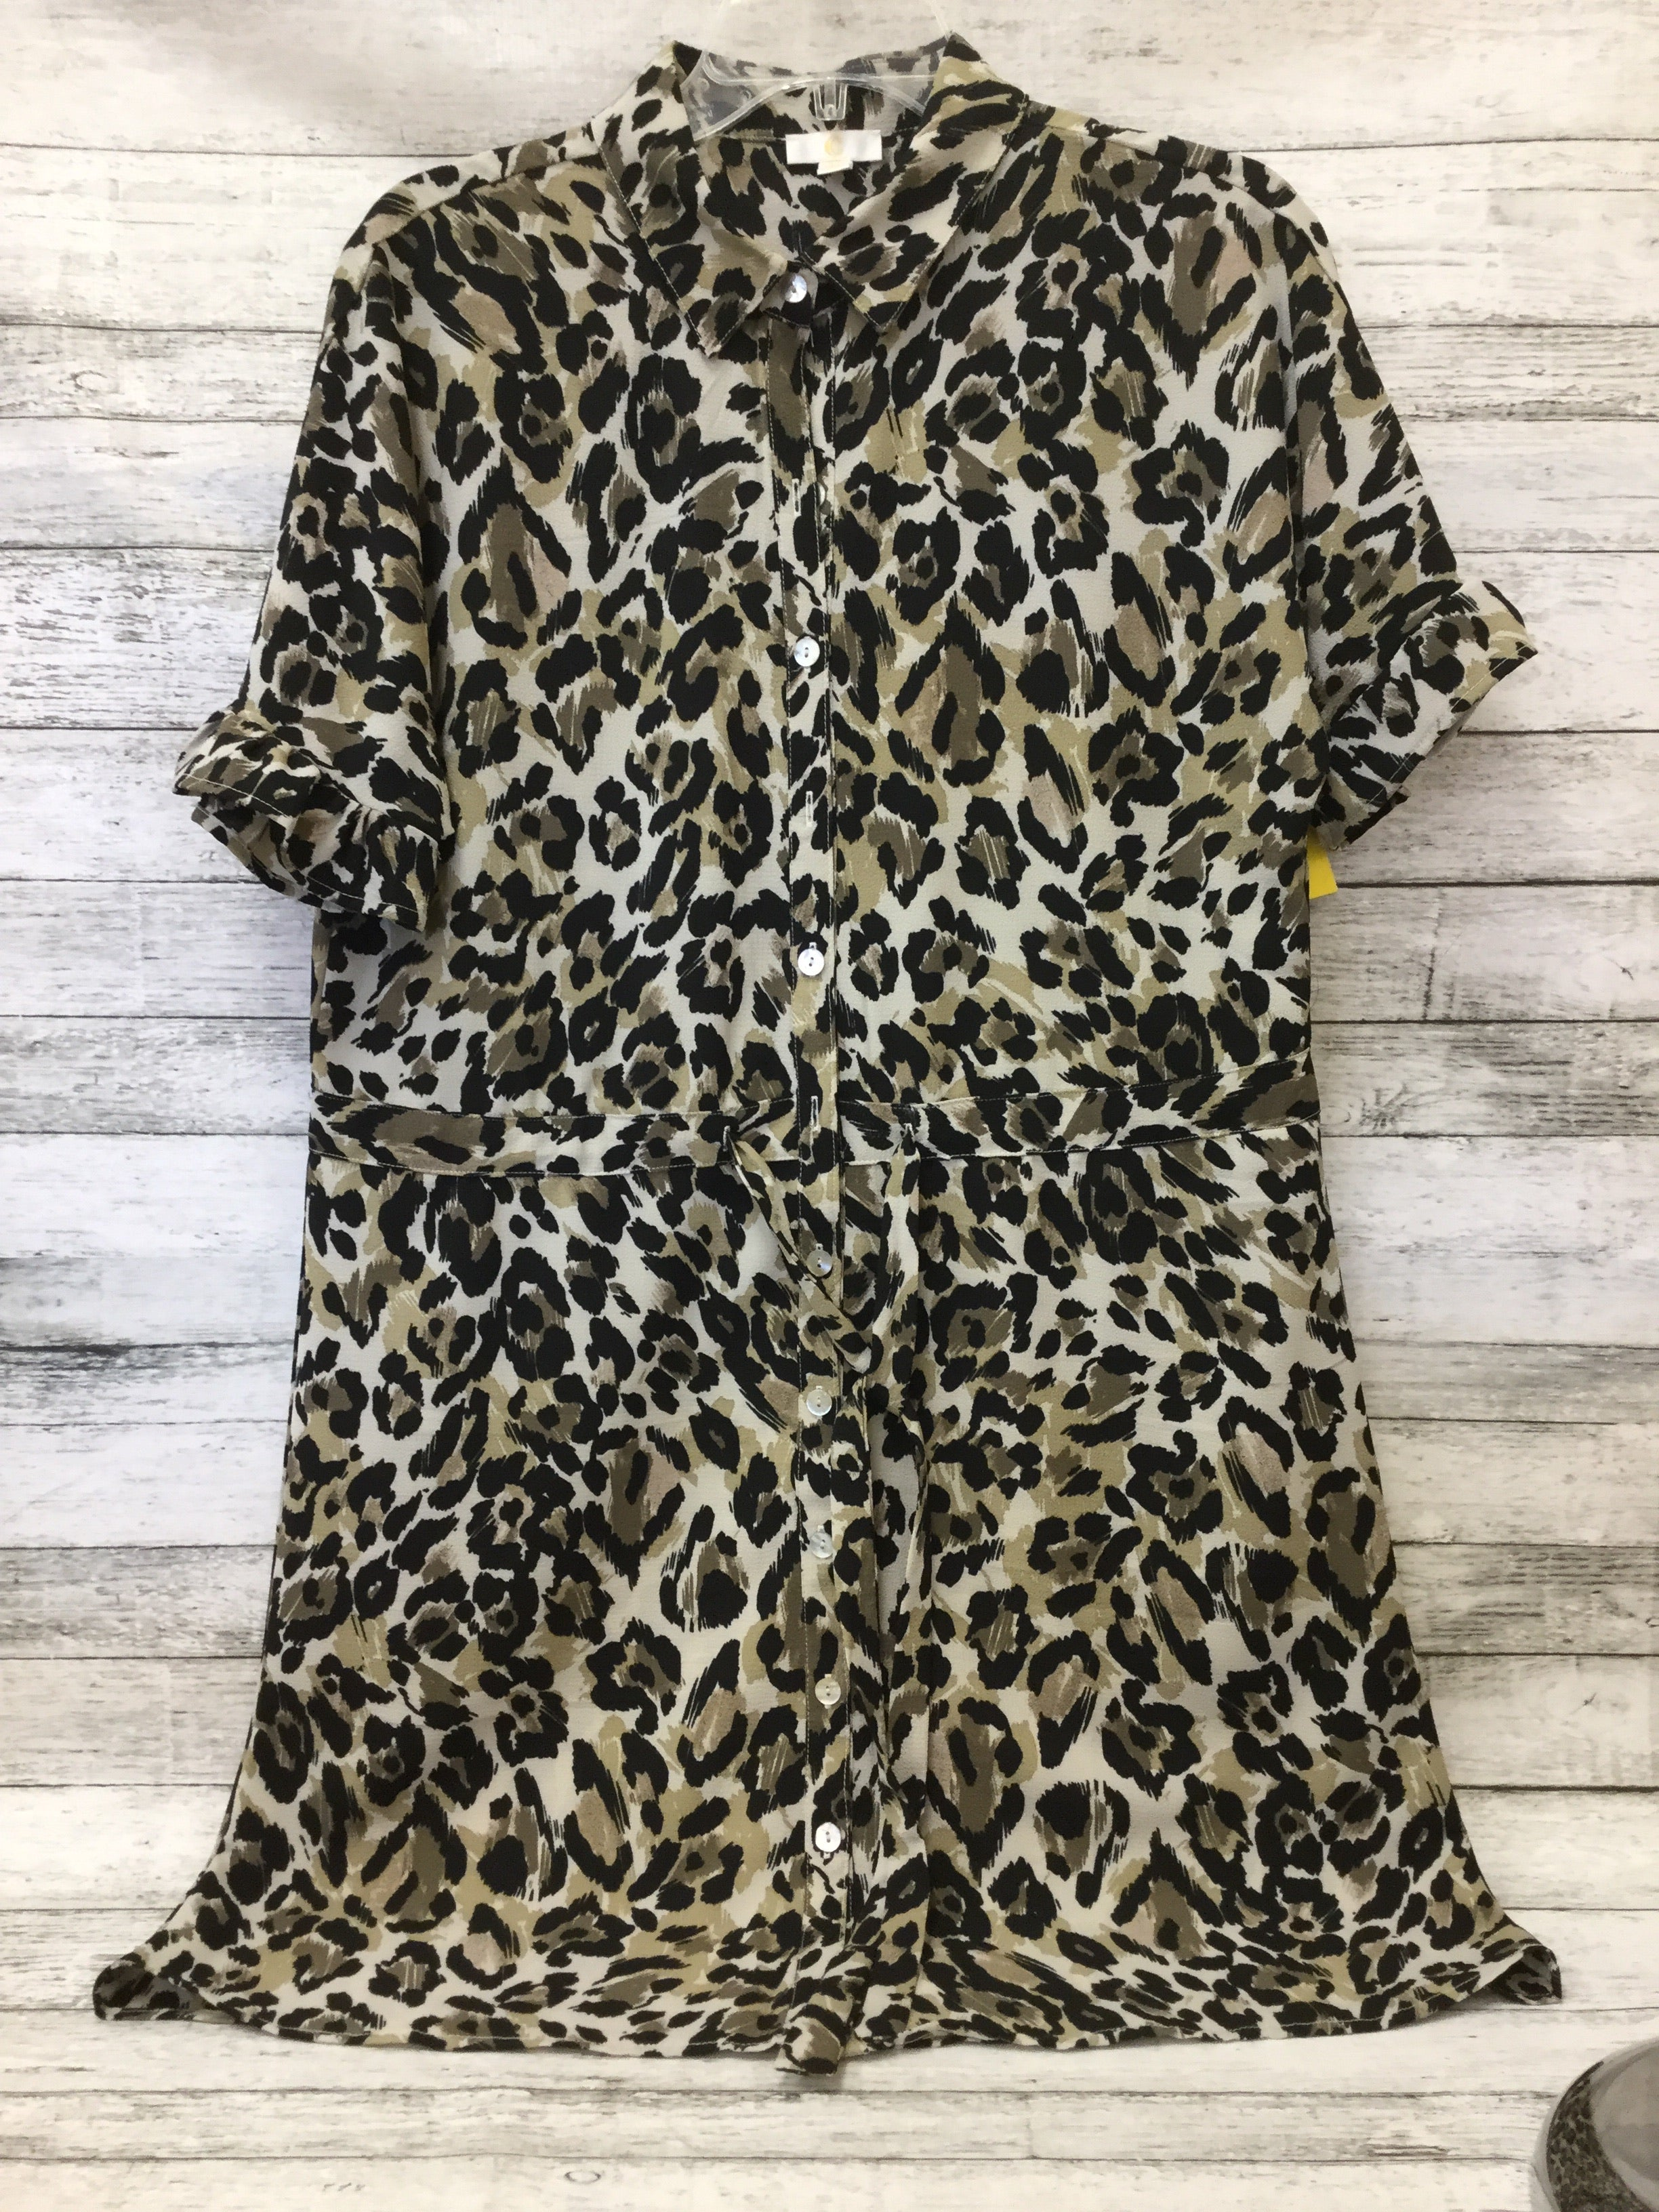 Primary Photo - BRAND: CHARMING CHARLIE , STYLE: DRESS SHORT SHORT SLEEVE , COLOR: ANIMAL PRINT , SIZE: M , SKU: 125-3916-59937